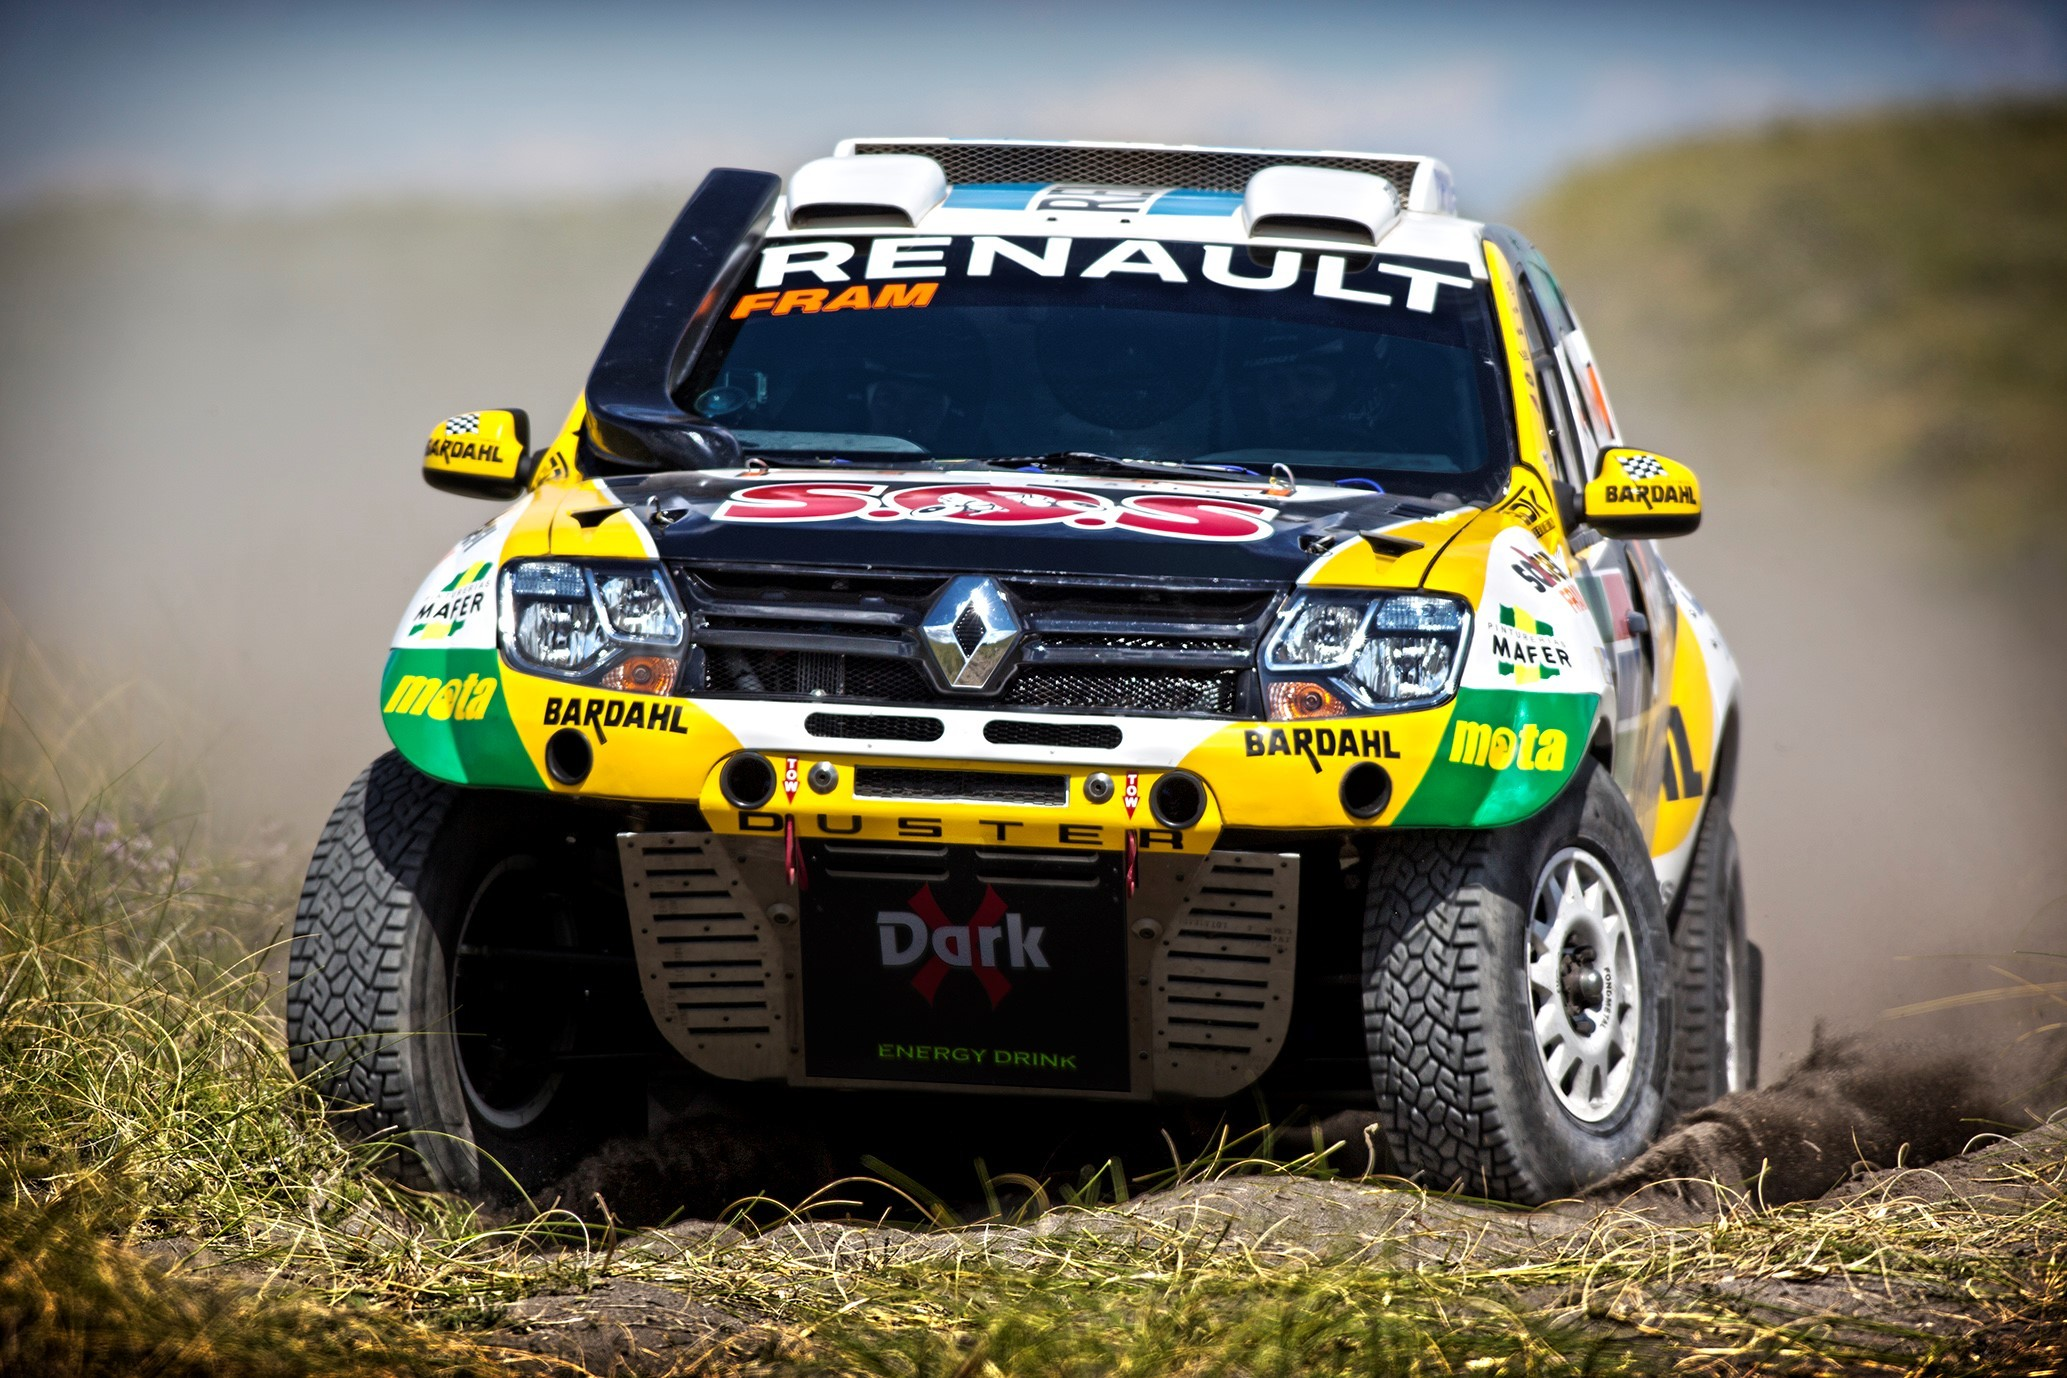 renault-aims-for-top-10-finish-in-dakar-2016-photo-gallery_11